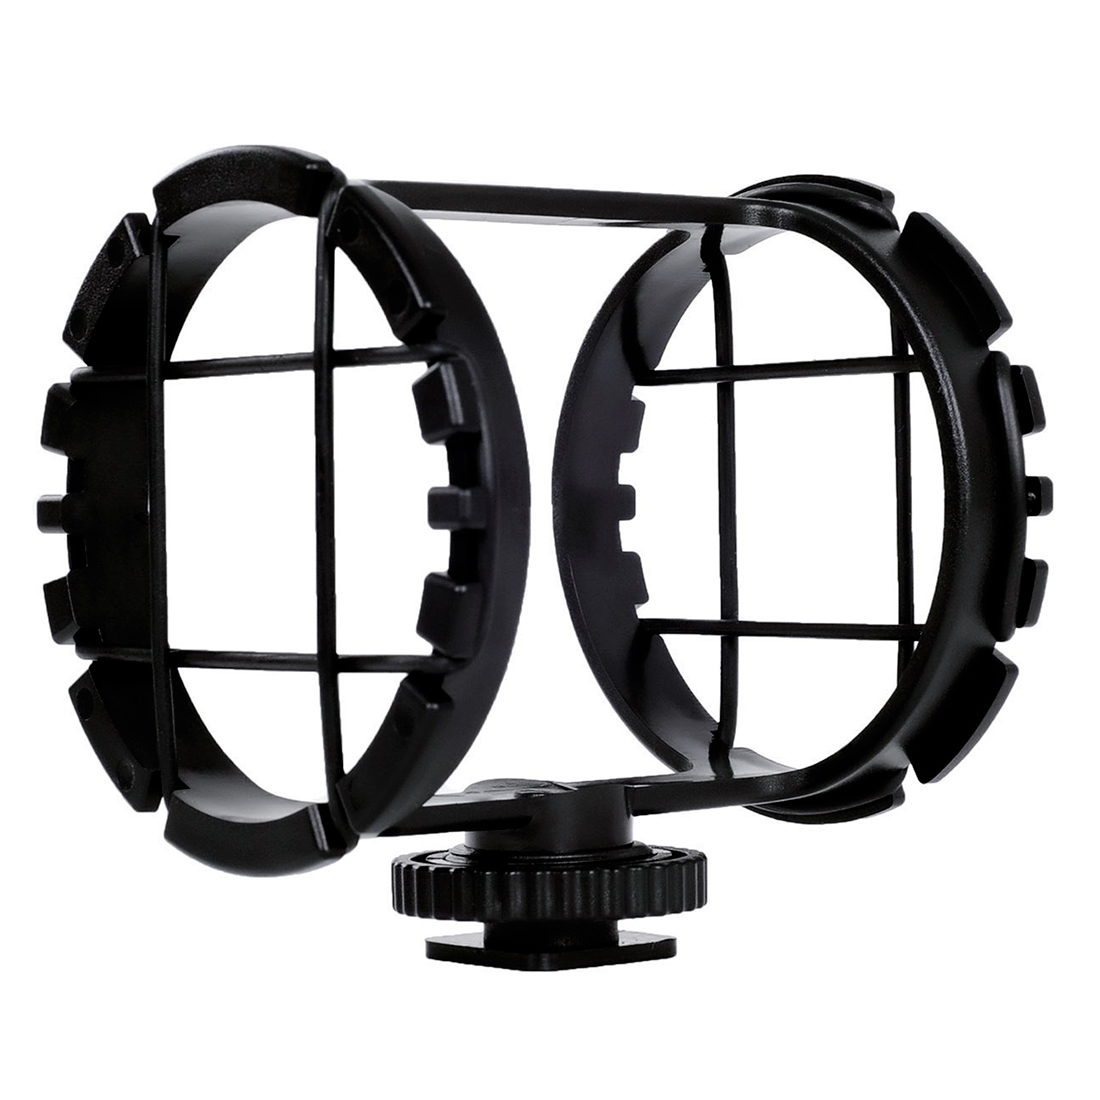 BY-C03 Camera Shoe Shockmount For Microphones 1